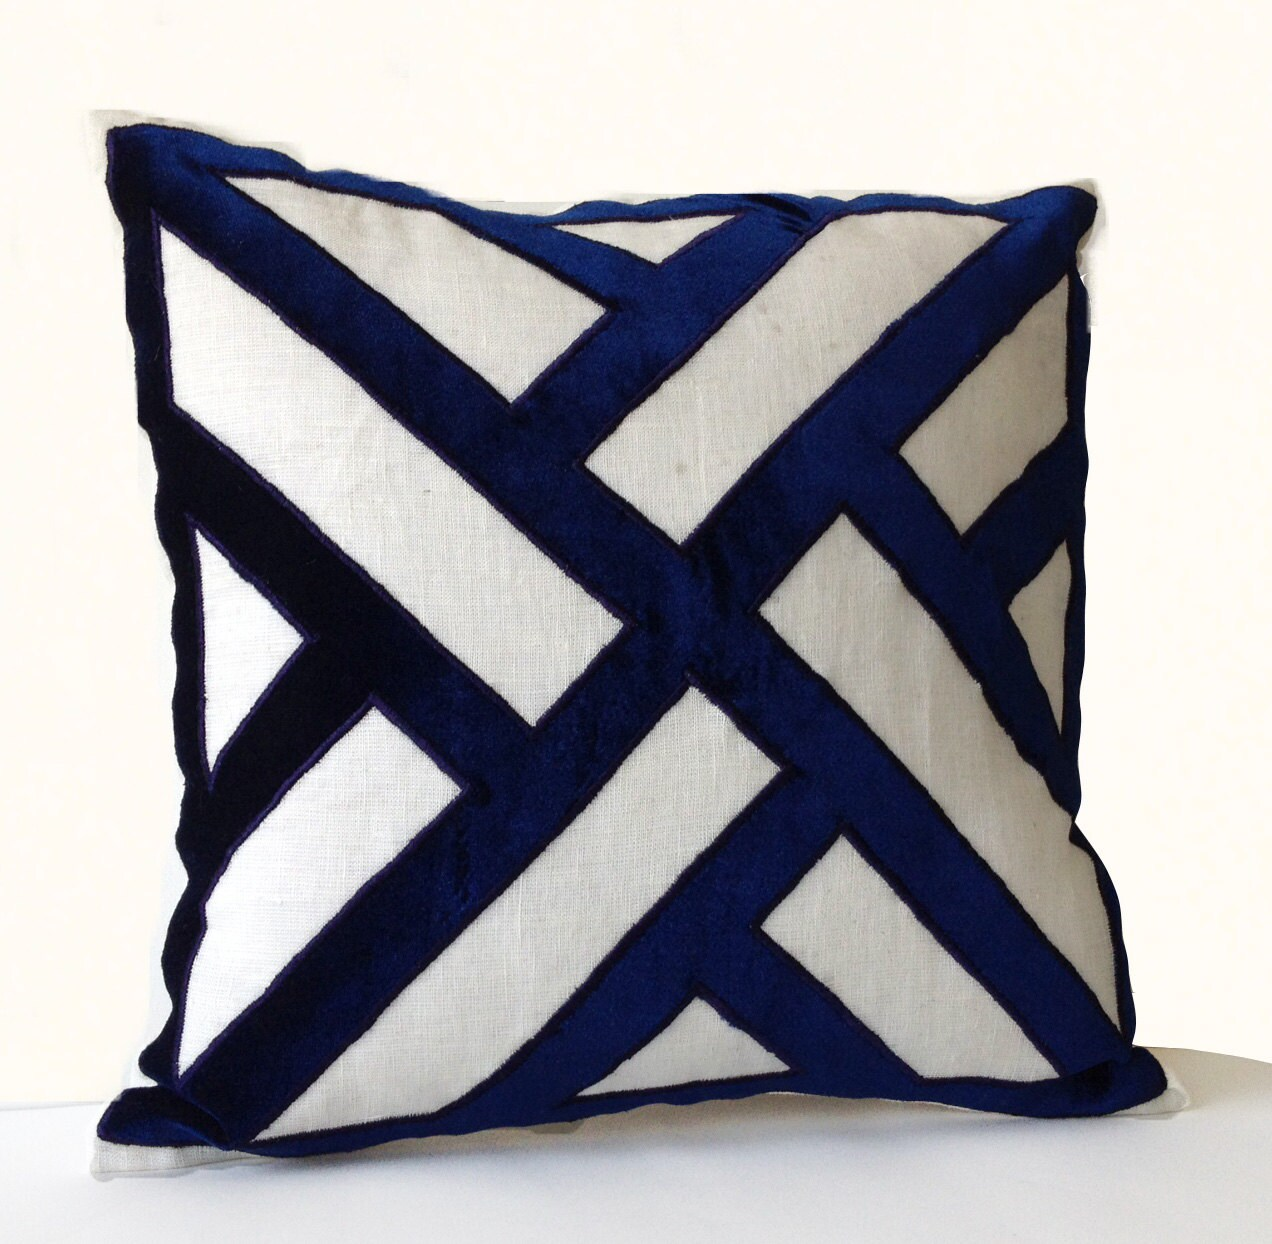 s kitchen throw brushed com corded blue the made dp usa u navy pillows home polyester amazon a pillow in